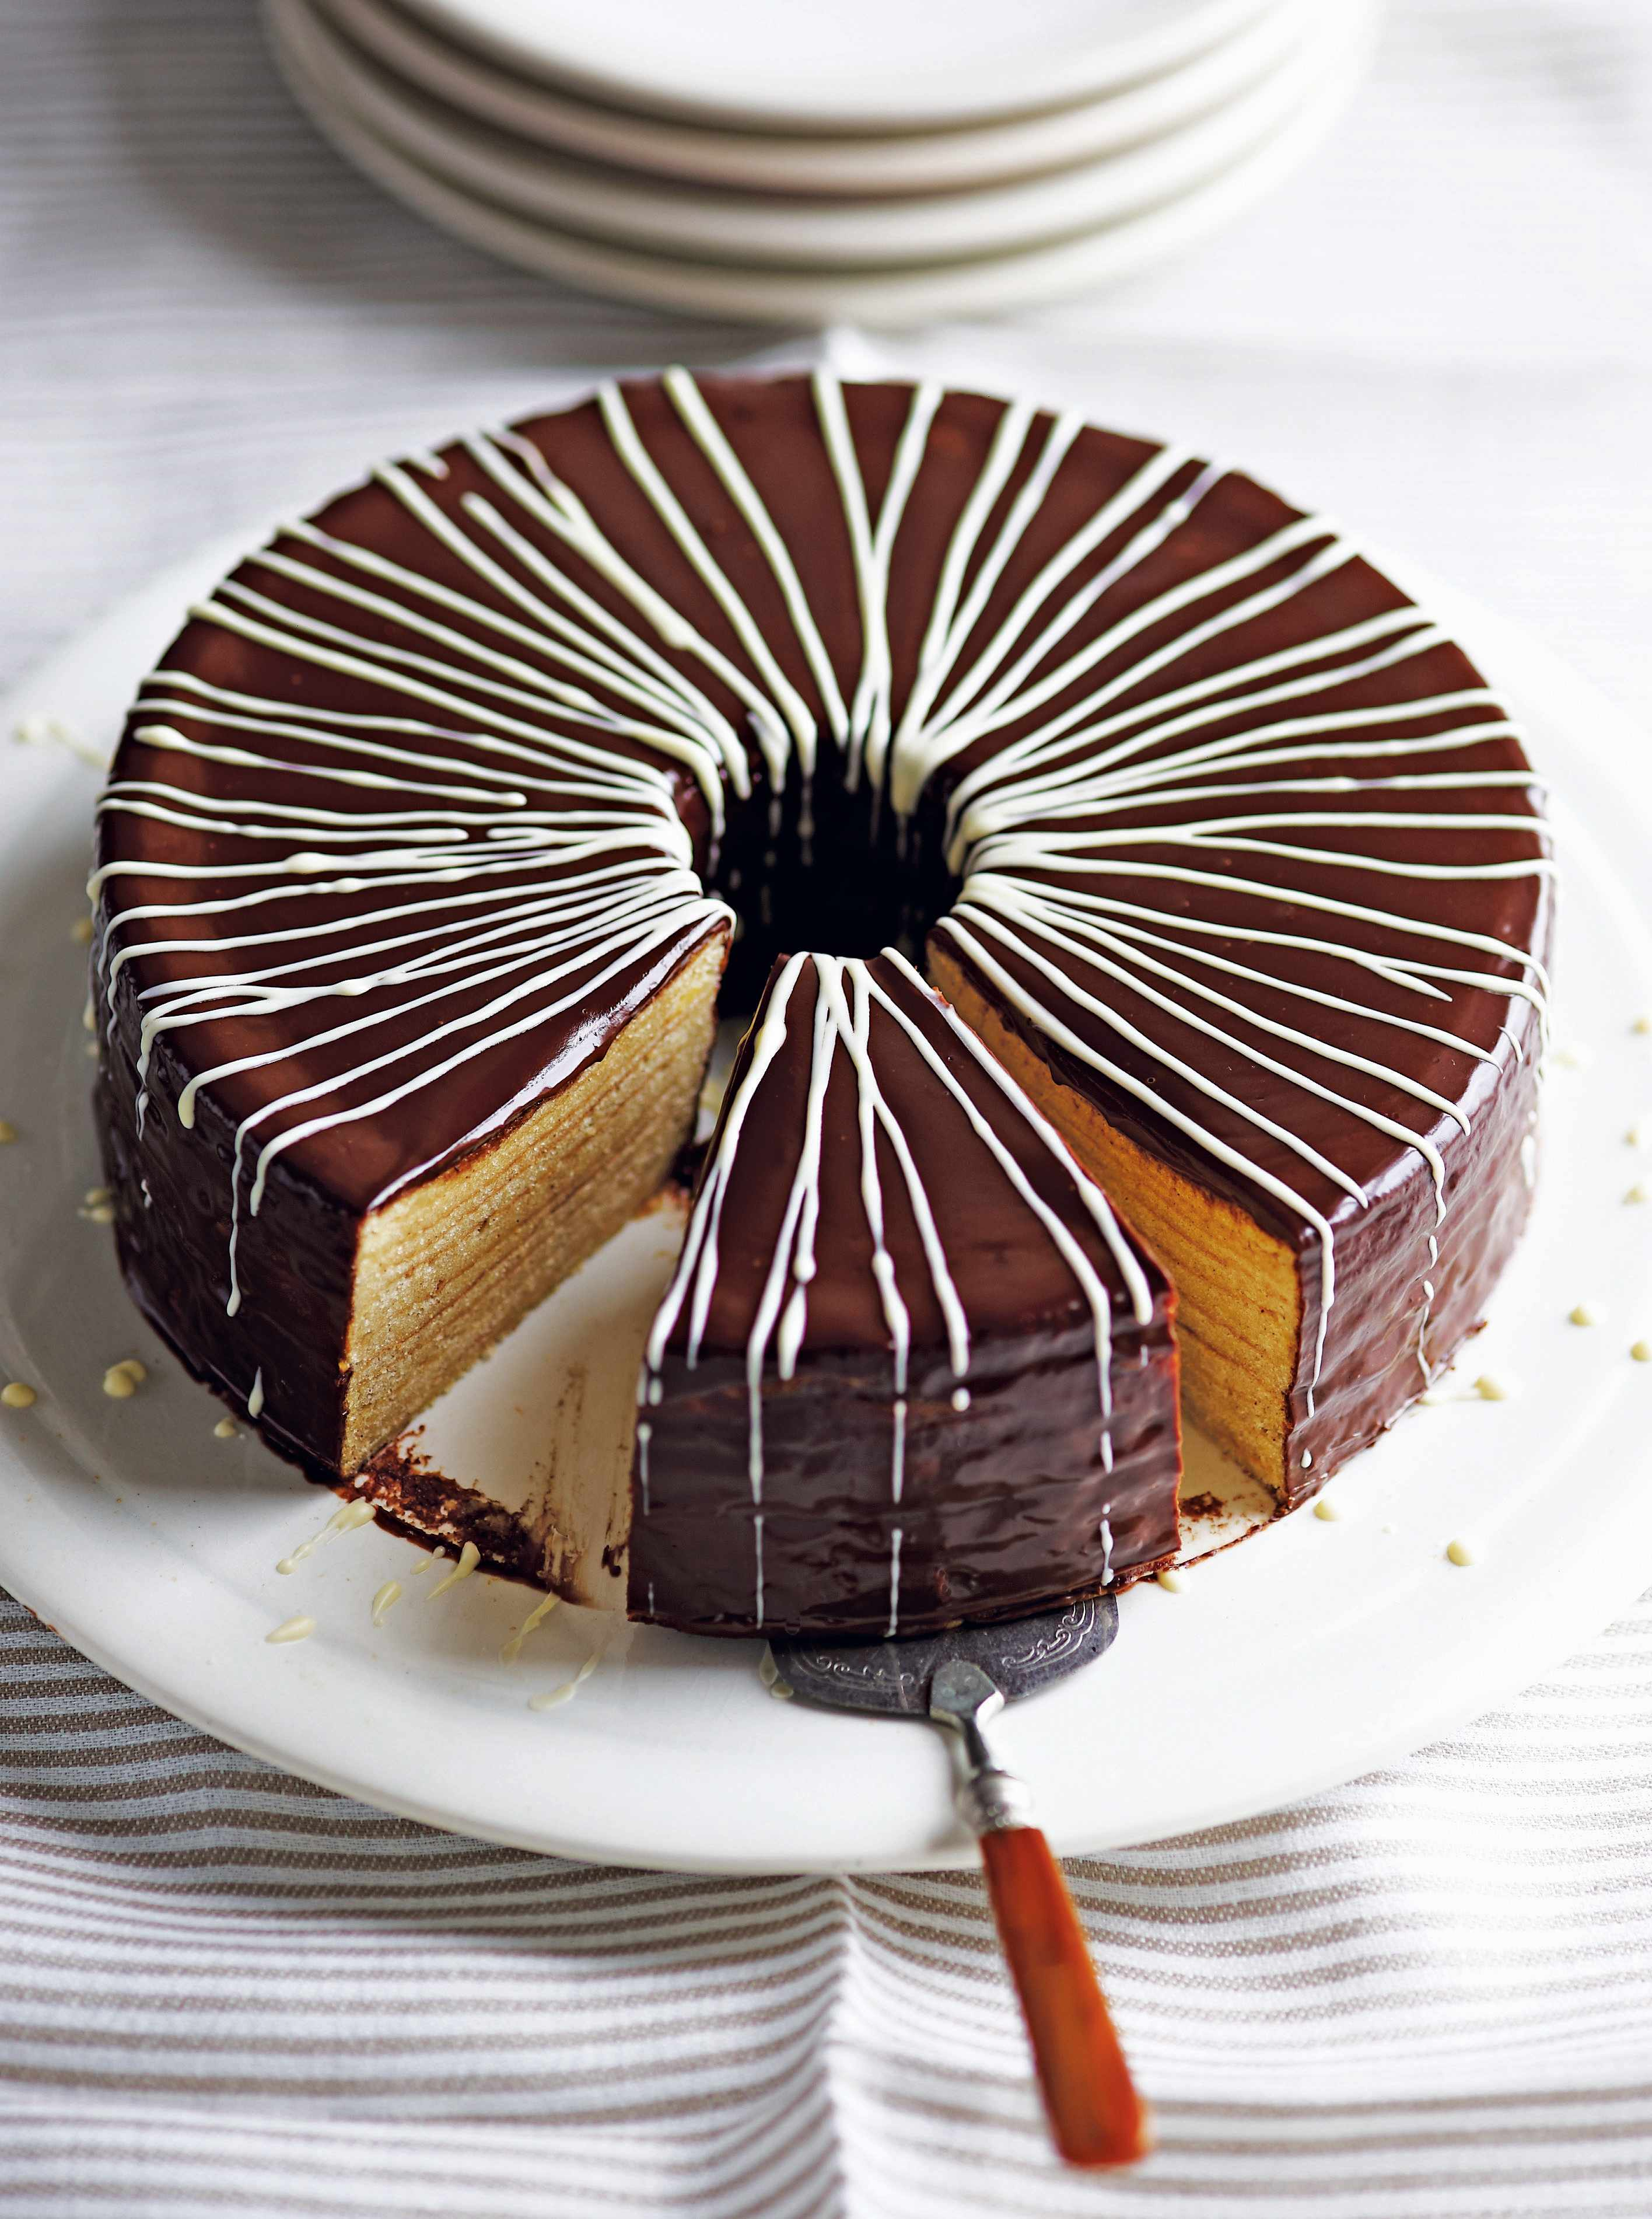 Spiced Rum Bamkuchen Cake Recipe - layered german christmas cake covered in chocolate glaze and white chocolate lines